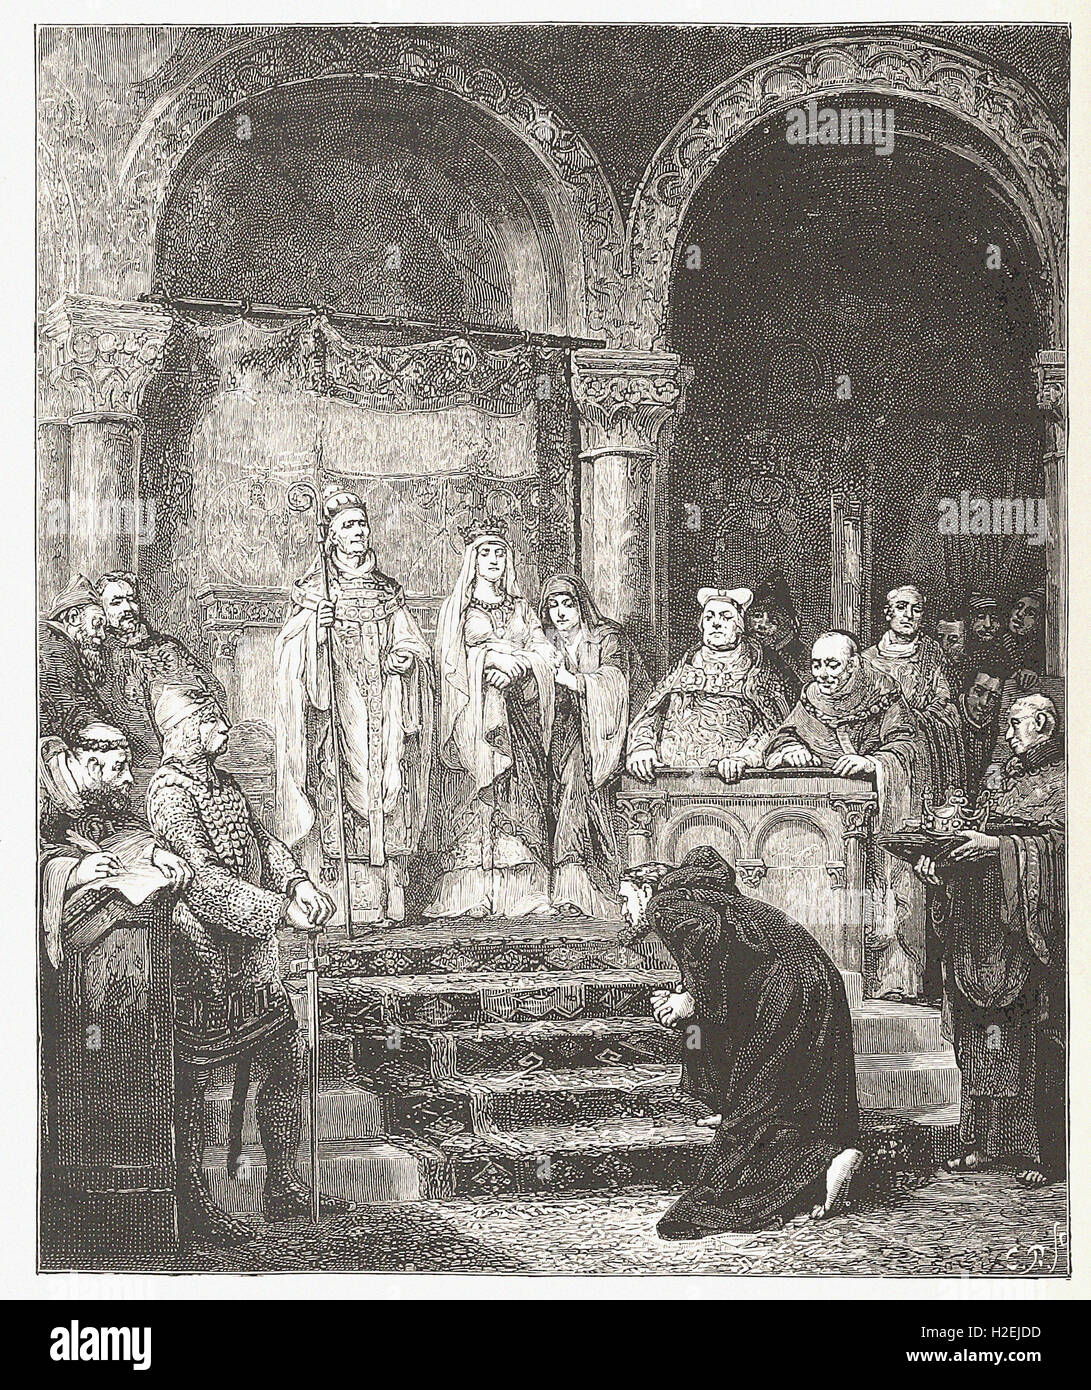 SUBMISSION OF HENRY IV AT CANOSSA  - from 'Cassell's Illustrated Universal History' - 1882 - Stock Image